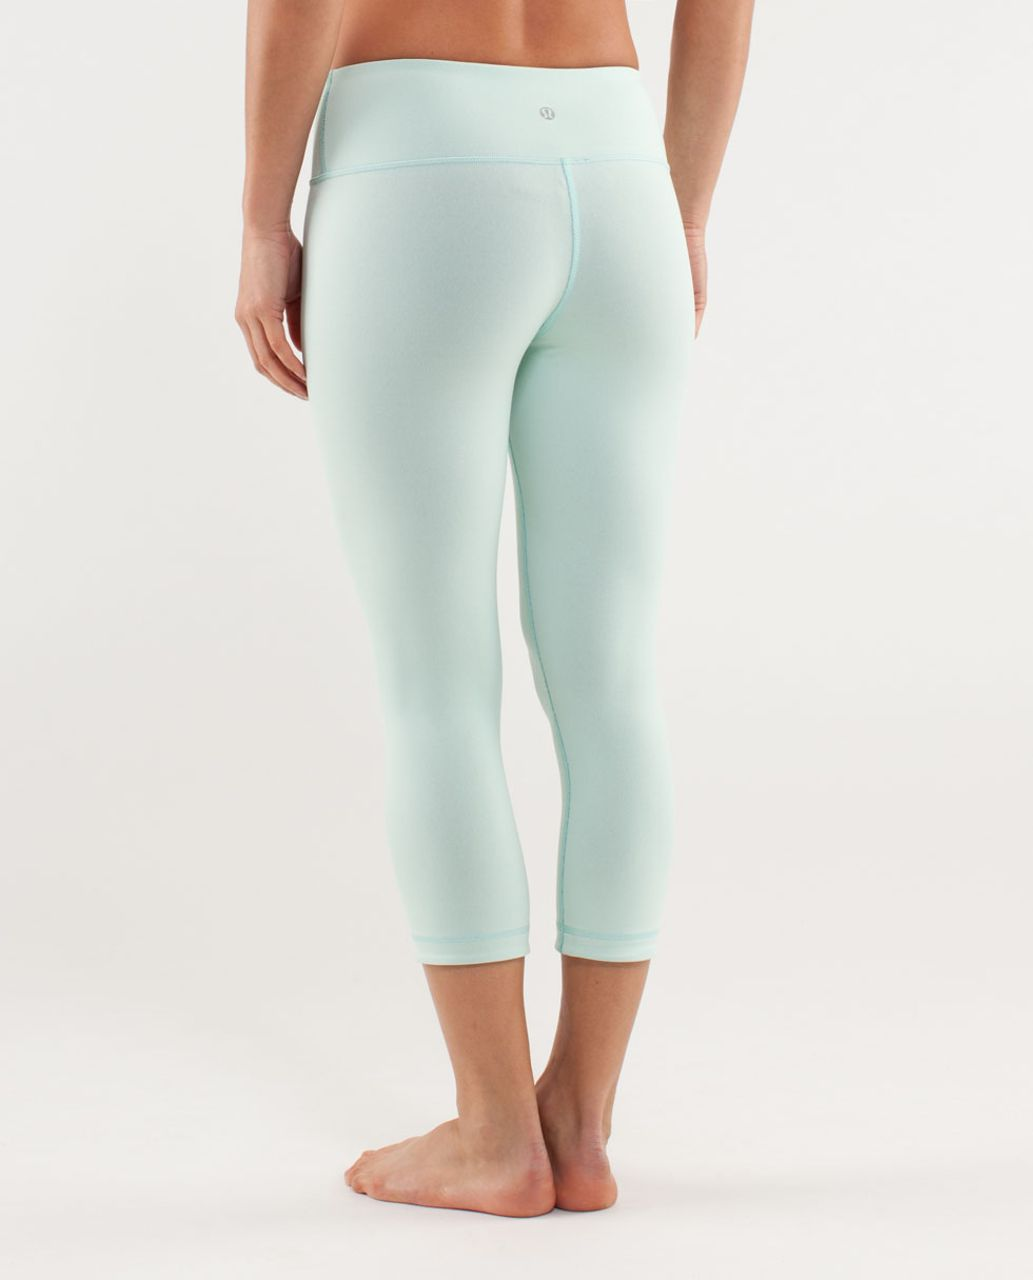 Lululemon Wunder Under Crop *Reversible - Mint Moment / Black